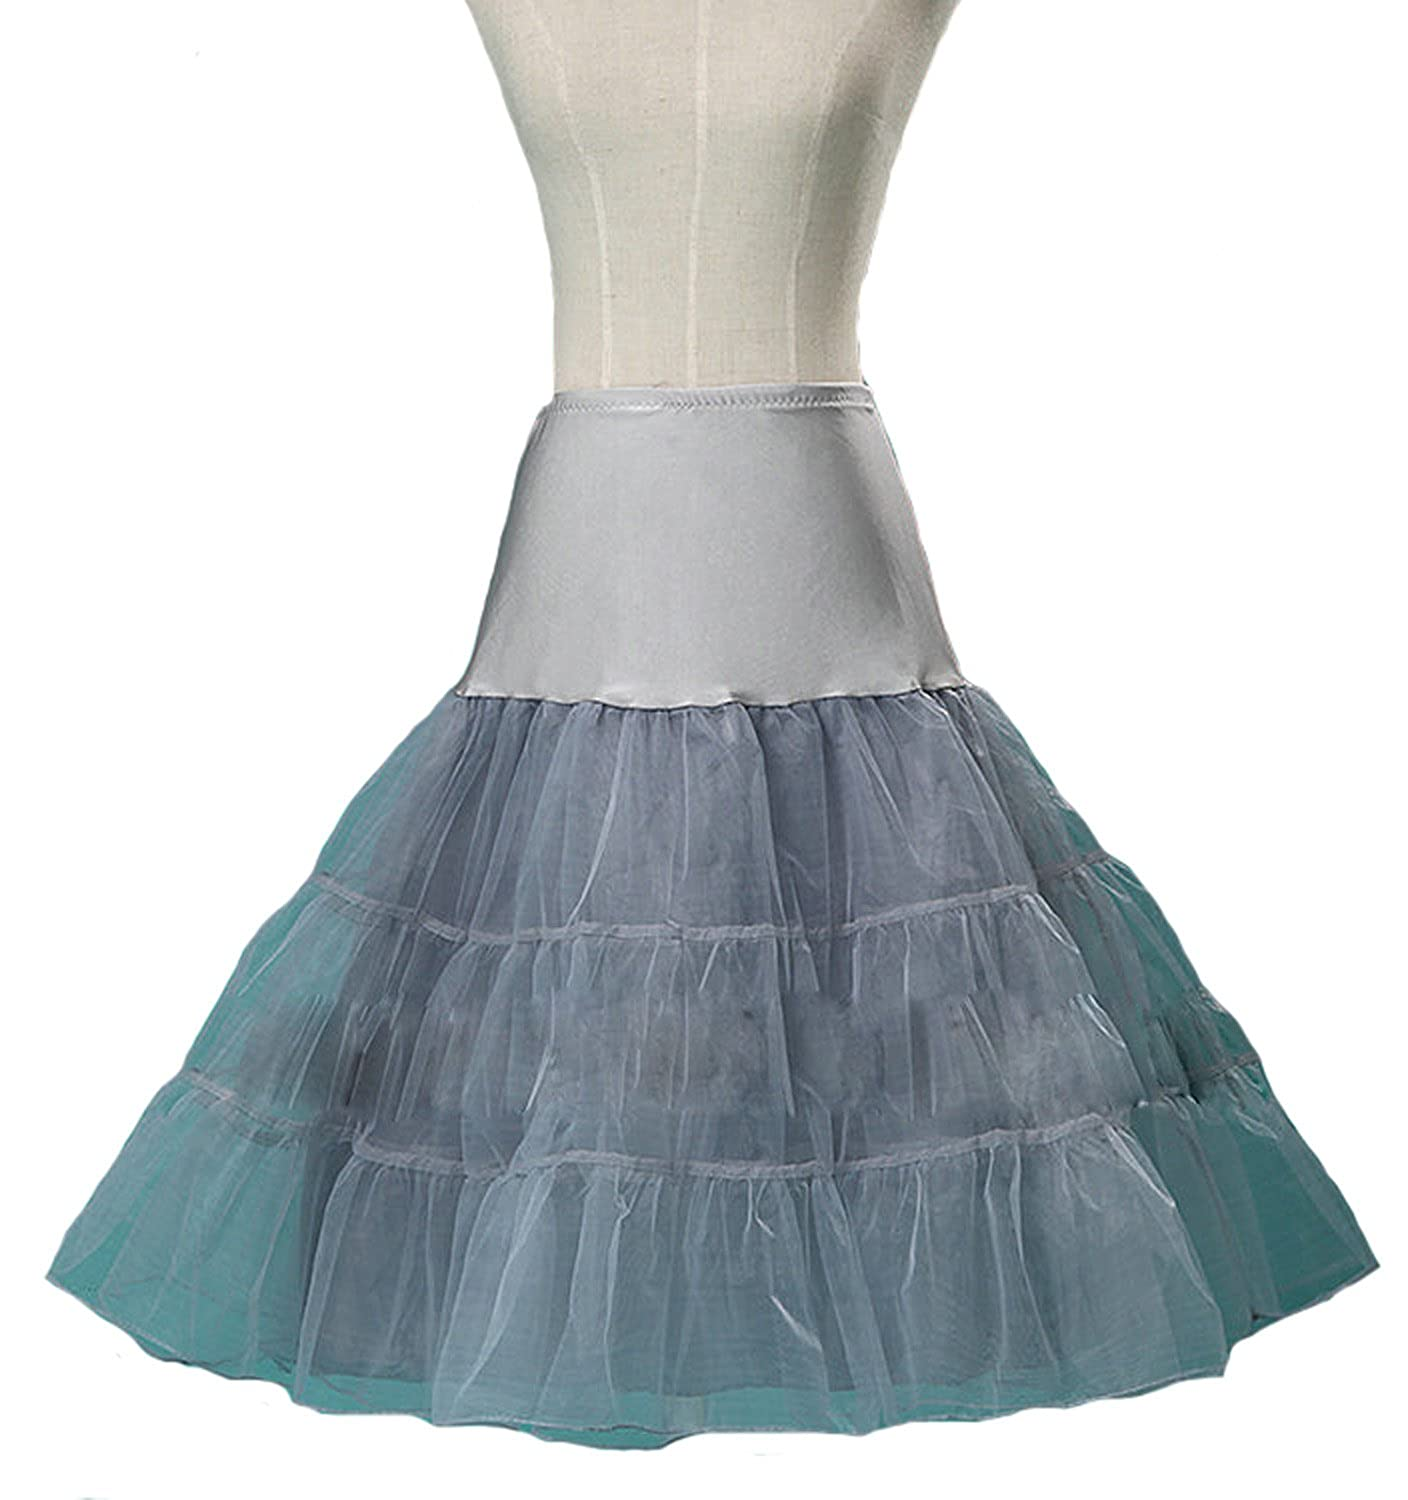 AliceHouse Women's 50s Vintage Petticoat Skirts Tutu Swing Skirt Underskirts PC1